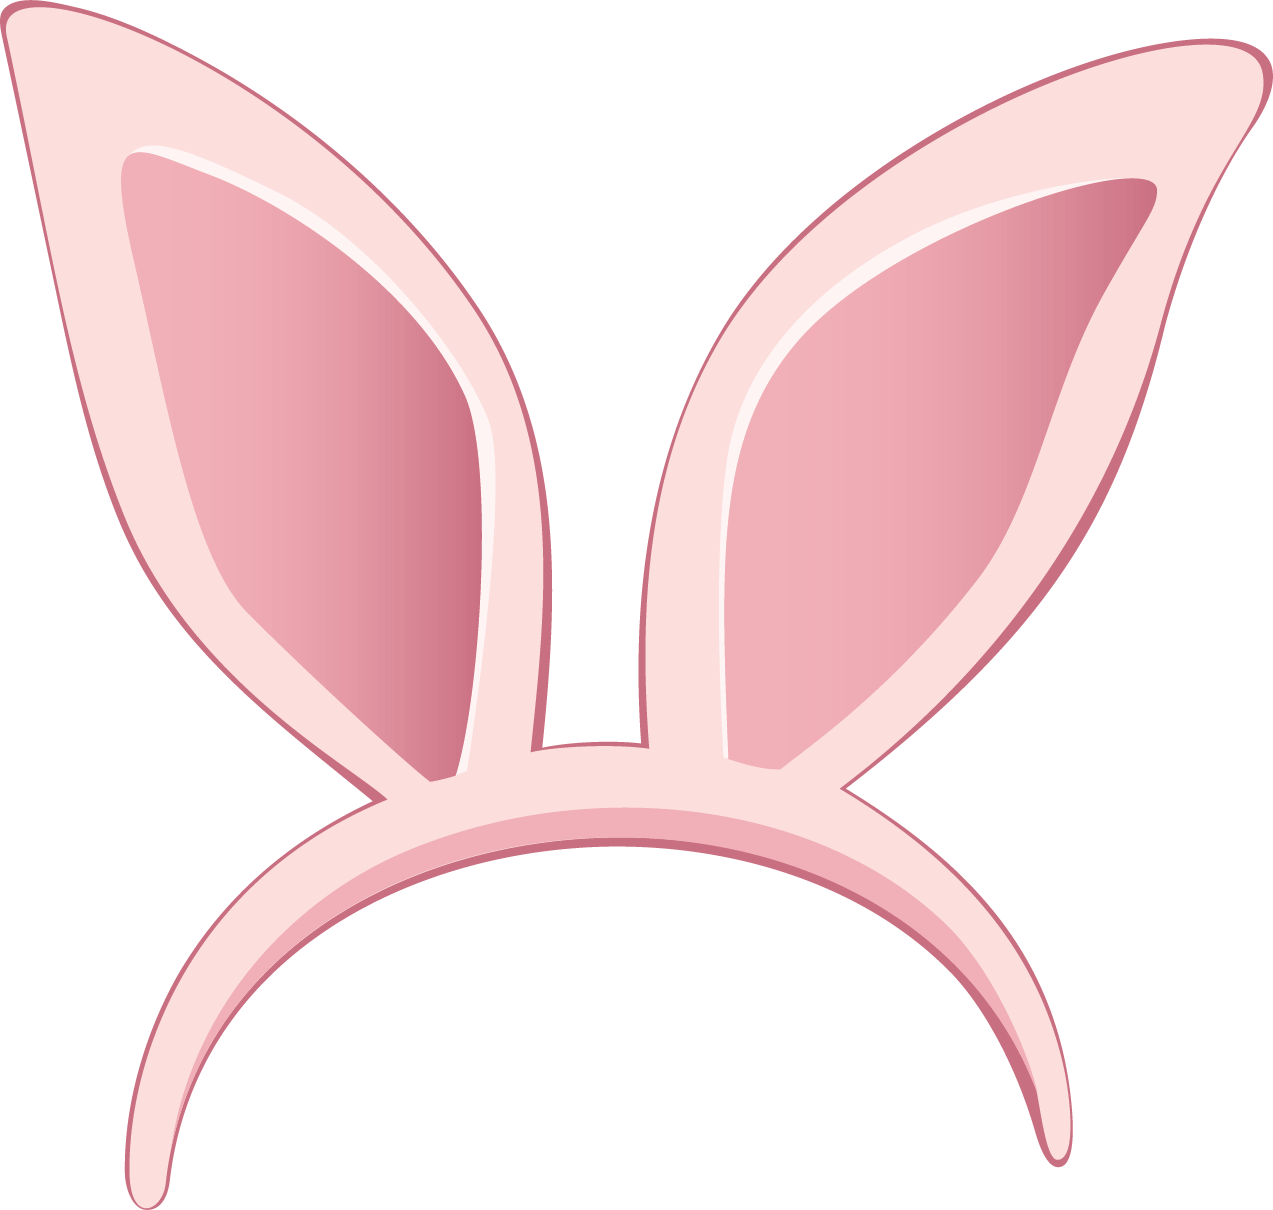 Rabbit ears png. Ear clipart transparent stickpng